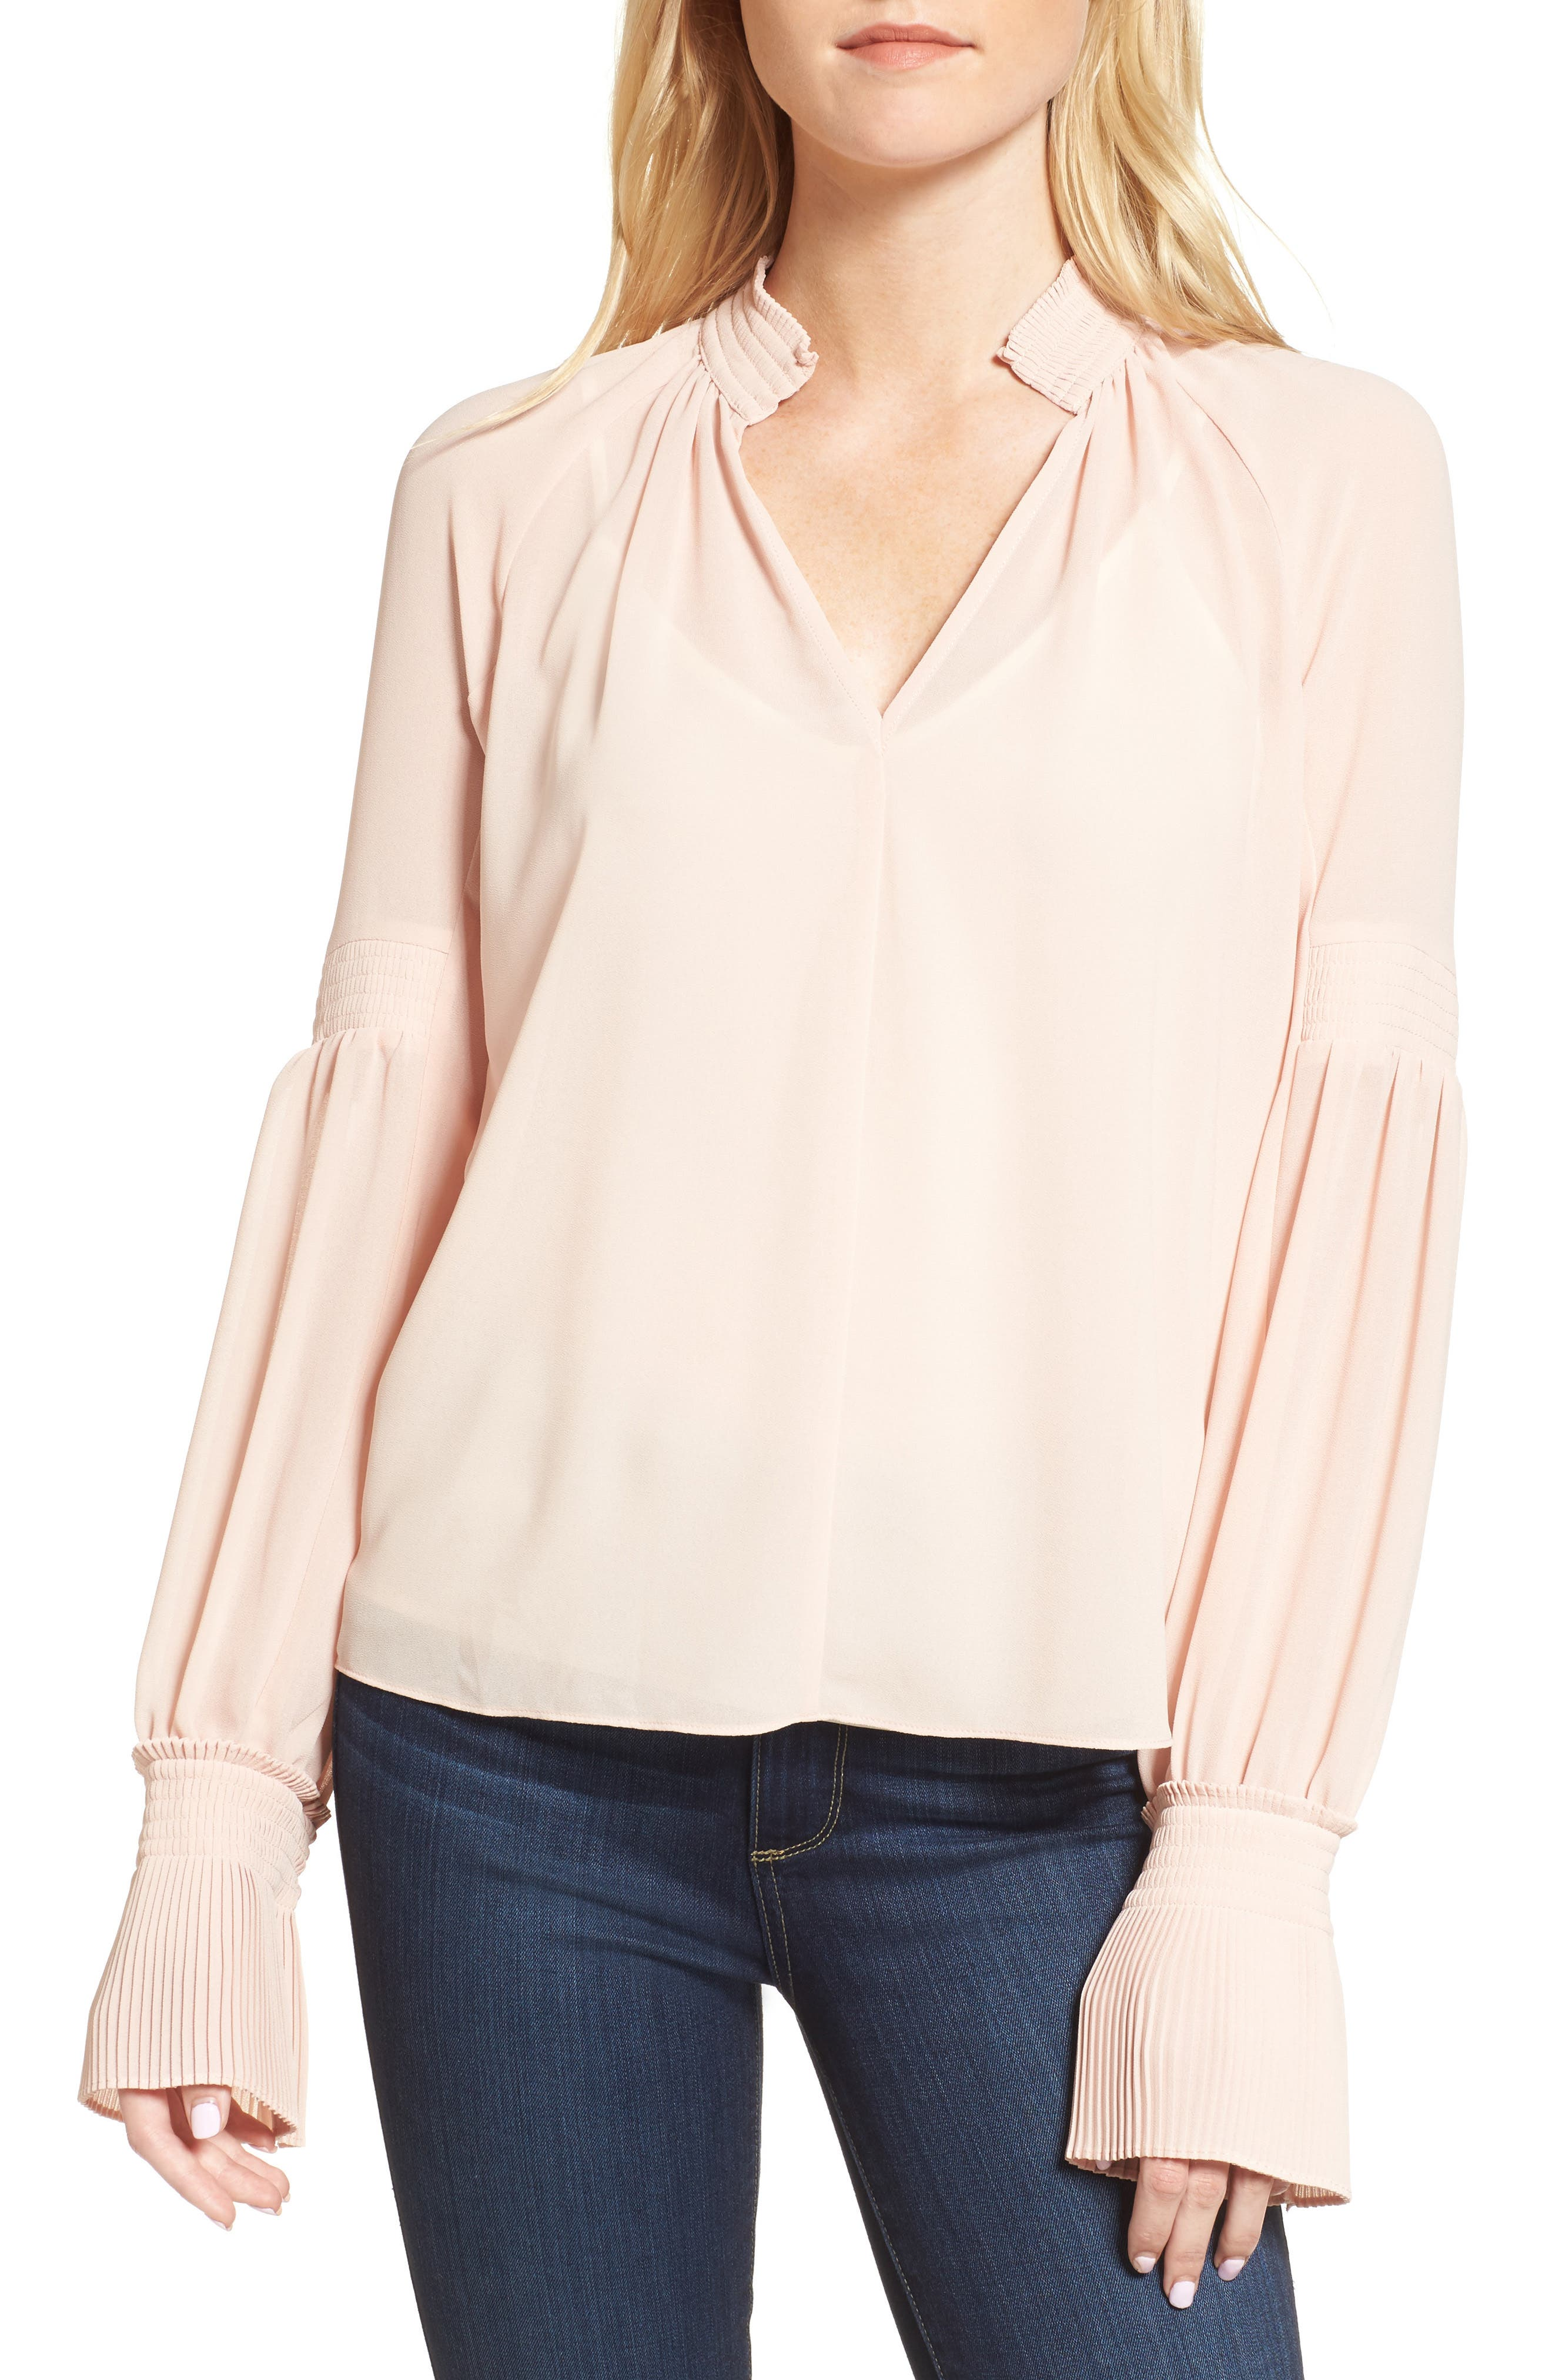 Alternate Image 1 Selected - Chelsea28 Flare Cuff Top